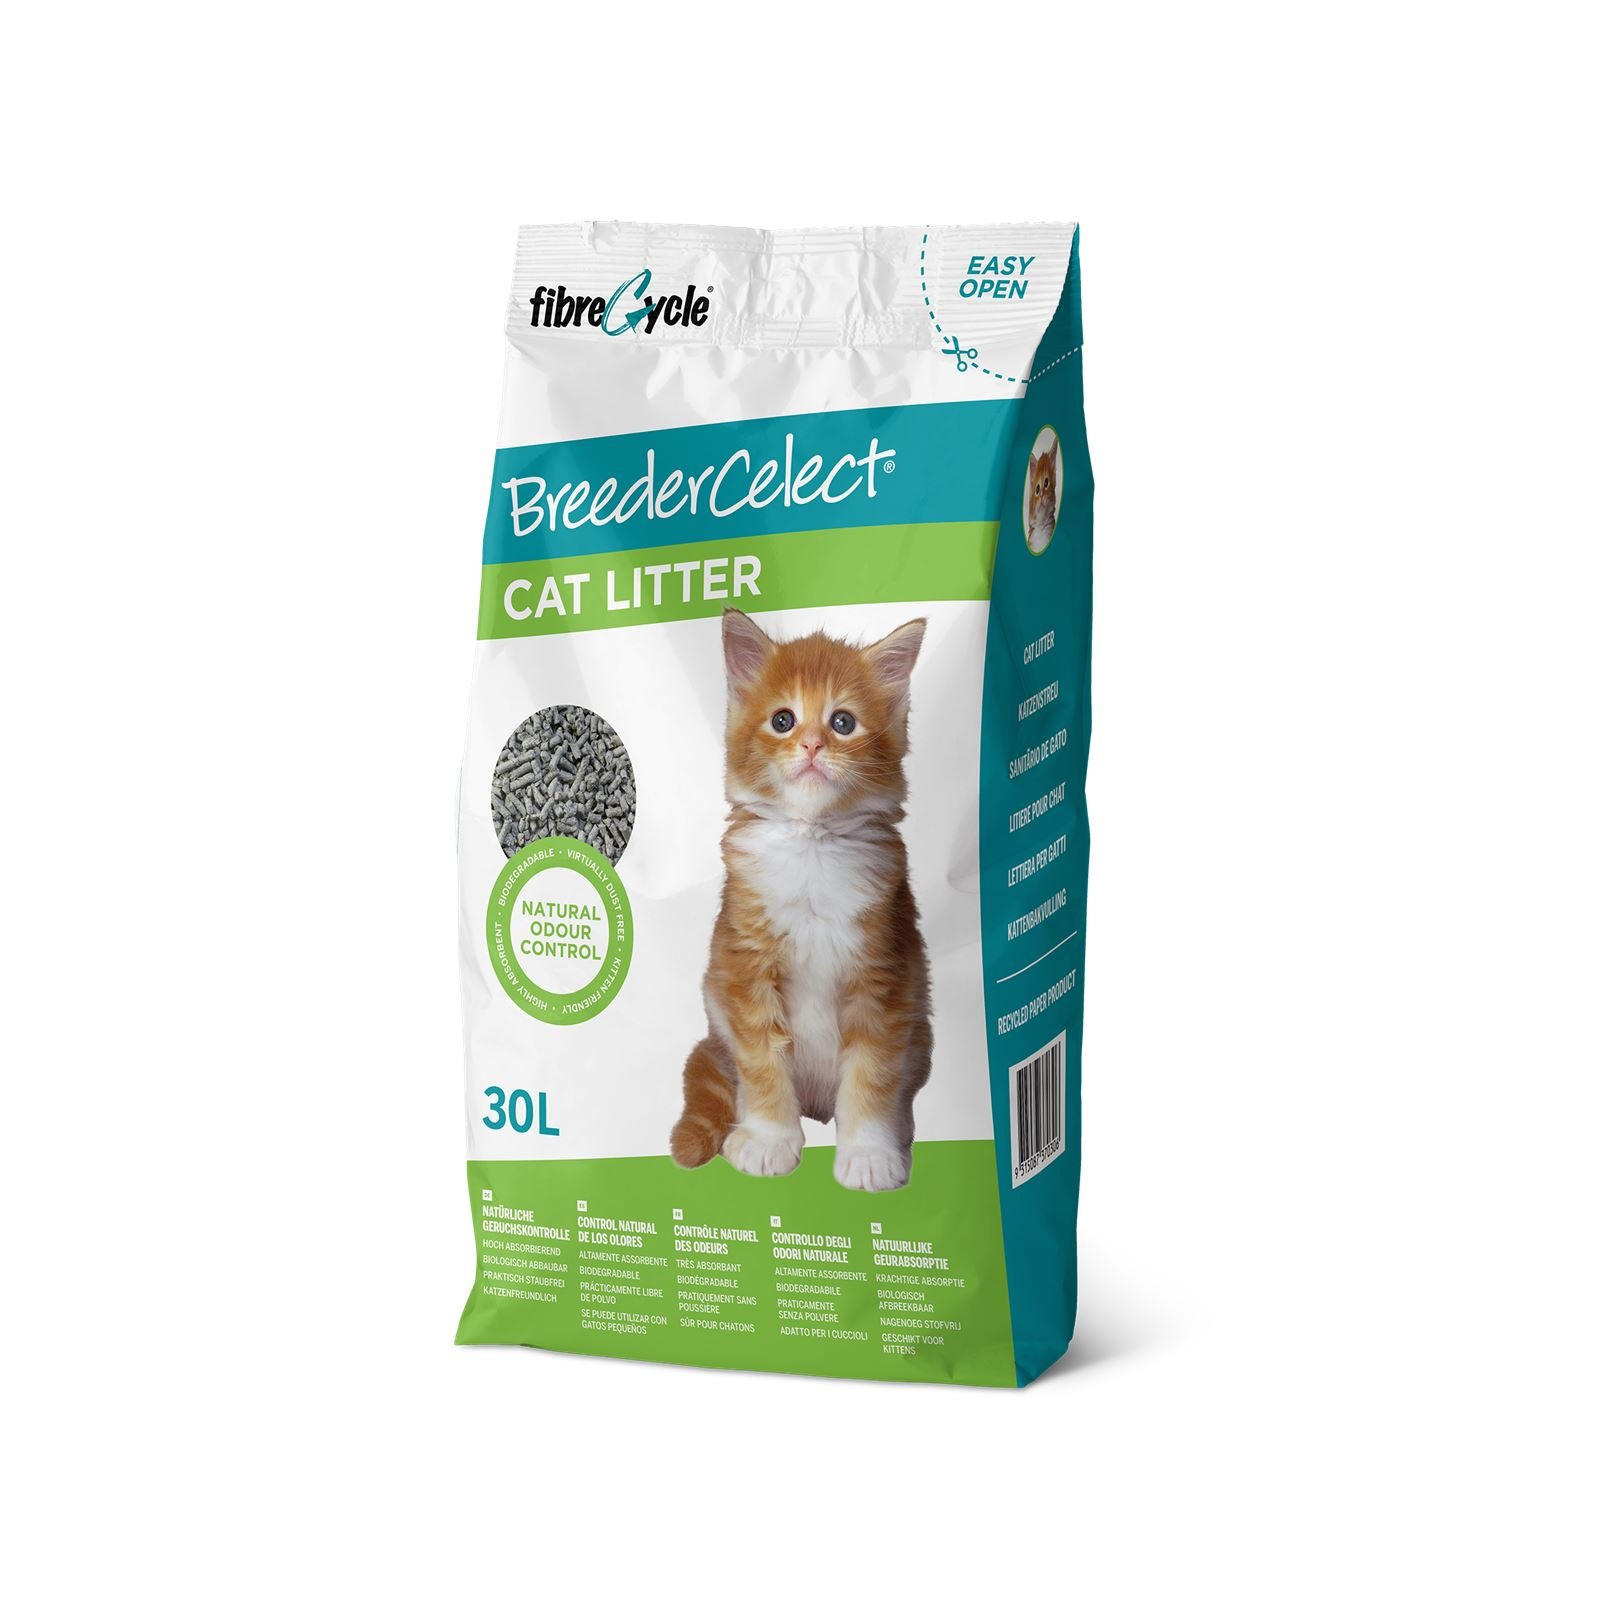 Breeder Celect Cat Litter - 30 Litres